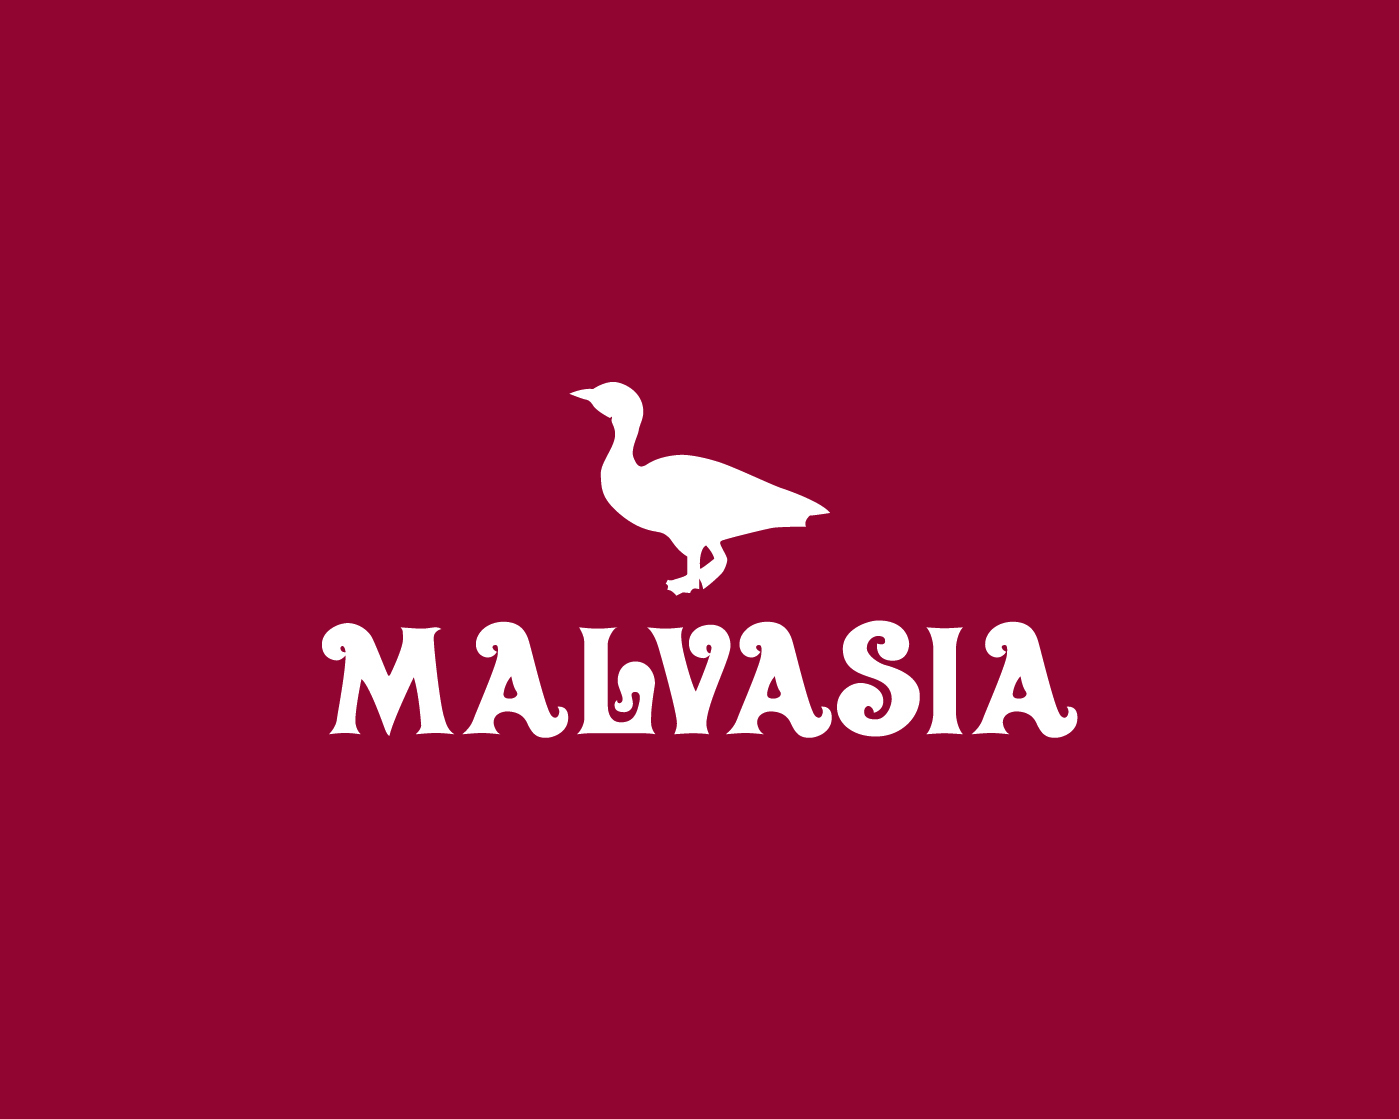 Publicidad Malvasia logo Coorporativo